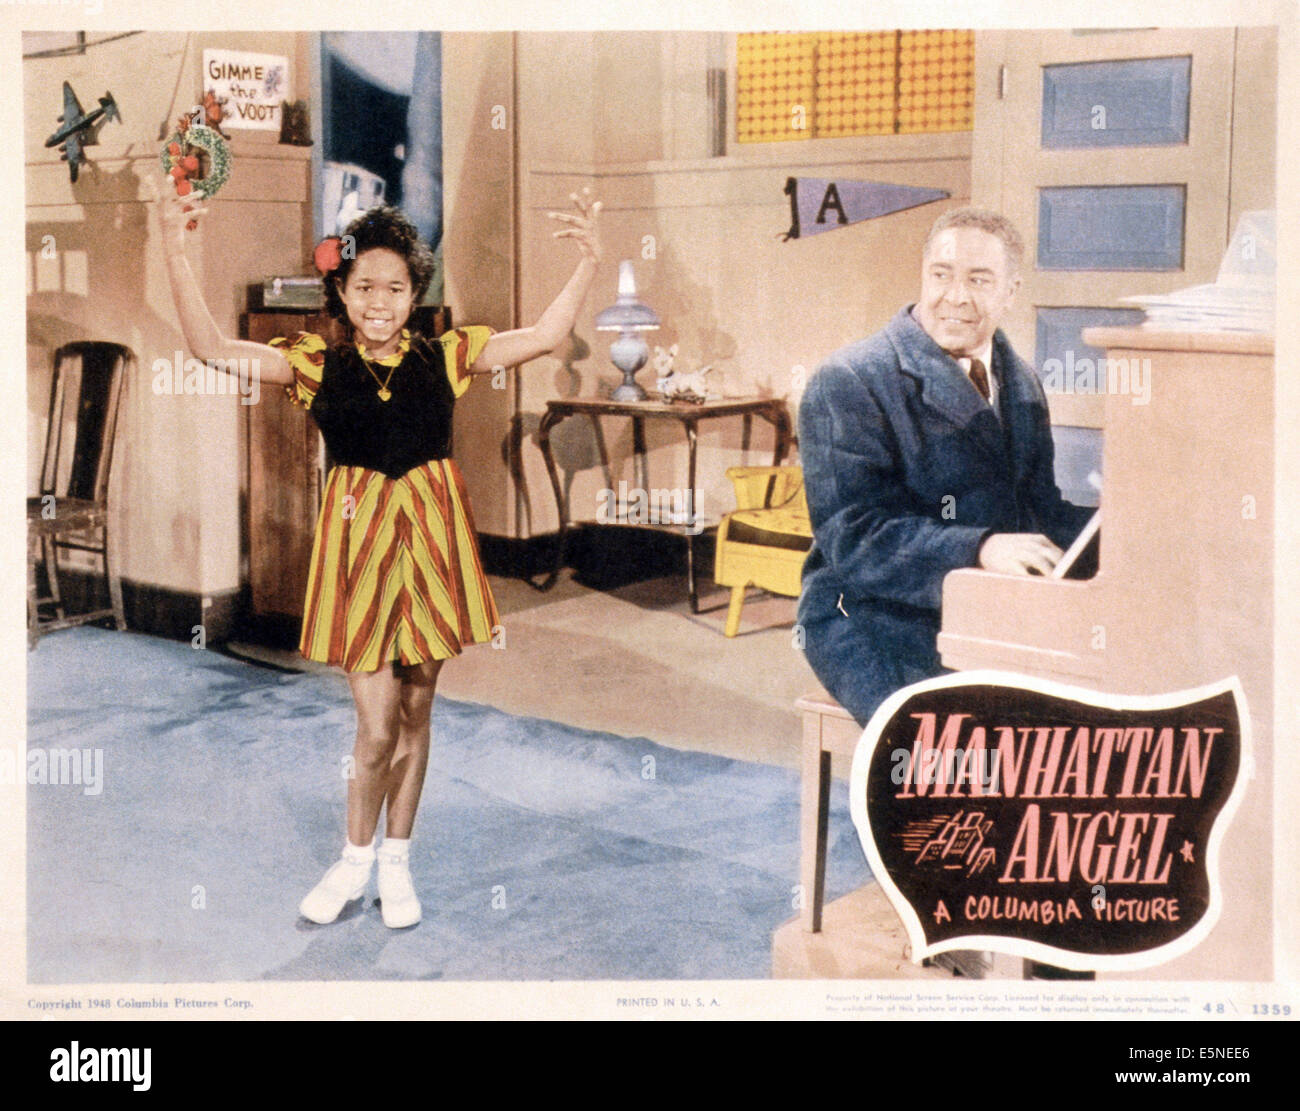 MANHATTAN ANGEL, Toni Harper (left), 1949 - Stock Image